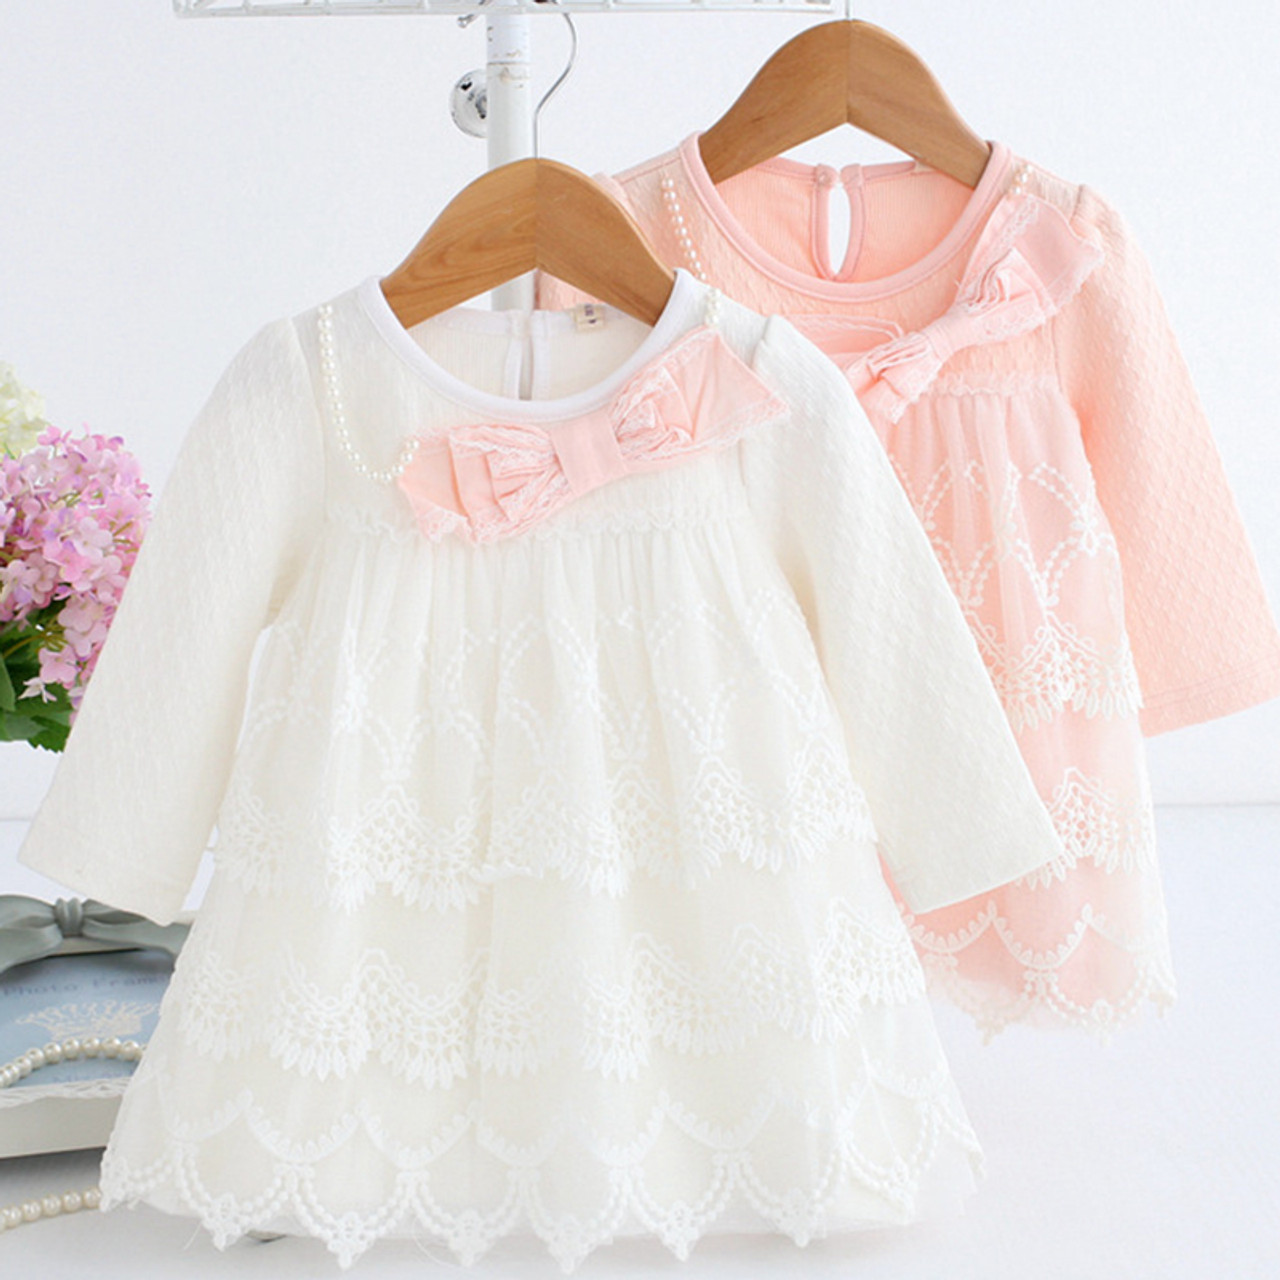 c32e1a221 Baby Dress Tiered Dresses Long Sleeve Spring Clothes 1 Year Old Girl  Birthday Dress Soft Cotton ...